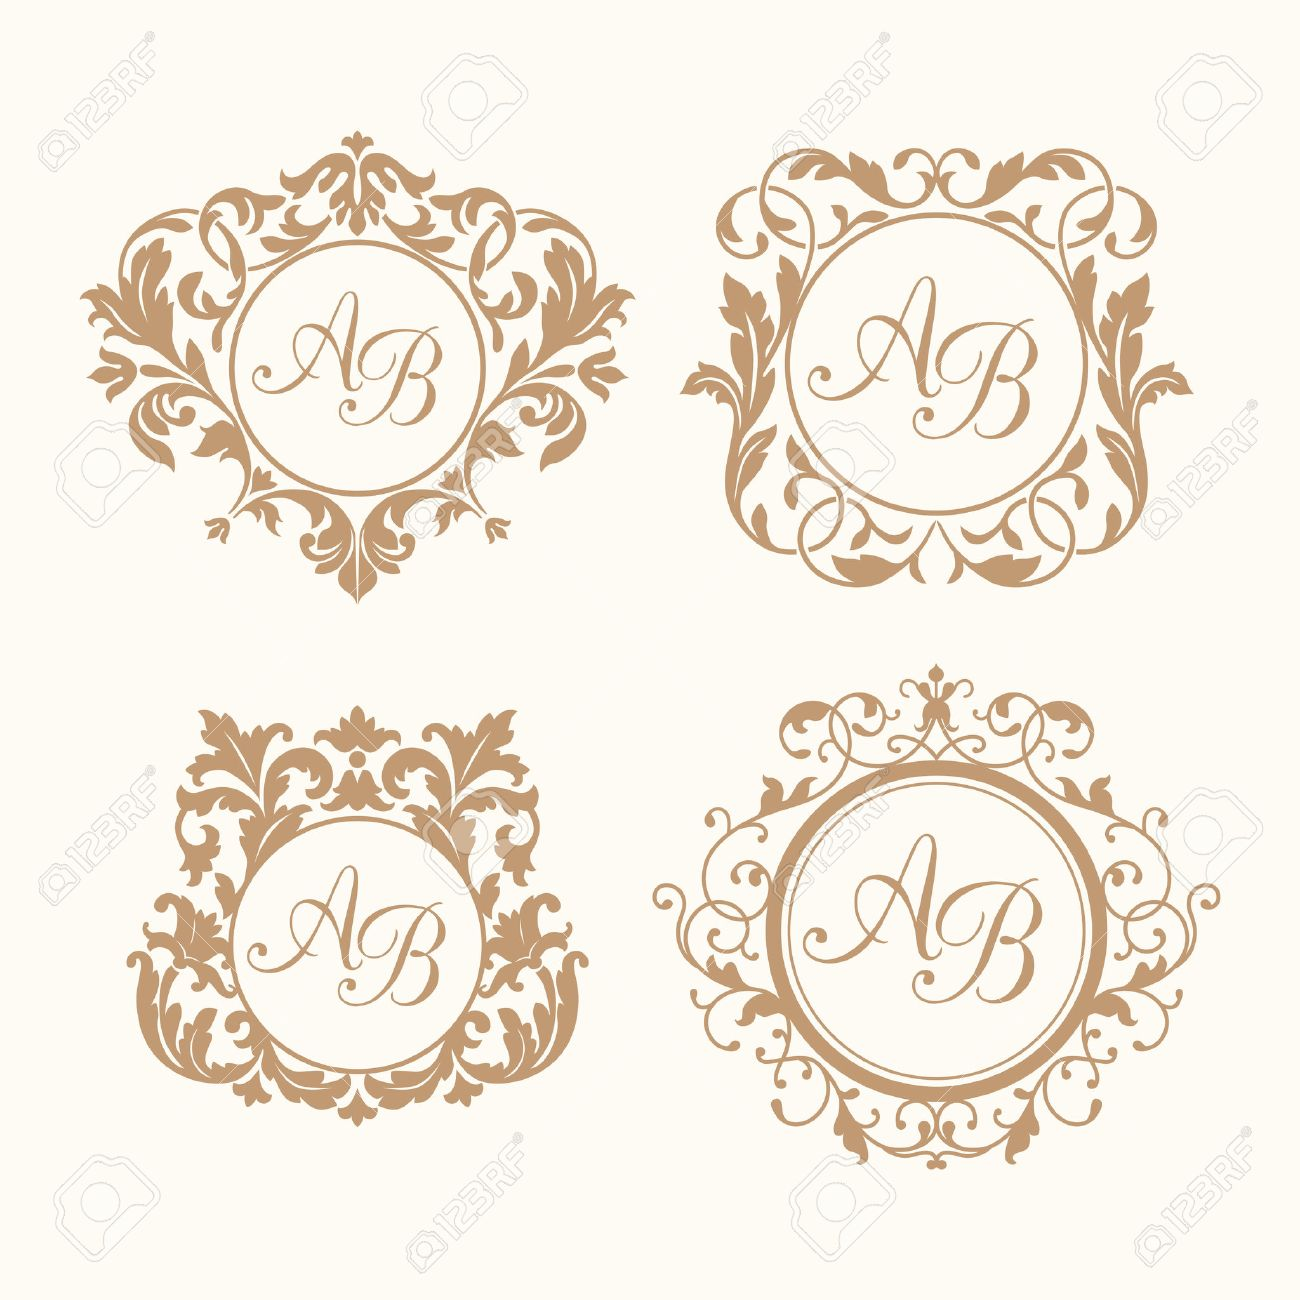 Set of elegant floral monogram design templates for one or two letters . Wedding monogram. Calligraphic elegant ornament. Monogram identity for restaurant, hotel, heraldic, jewelry. Stock Vector - 47403348